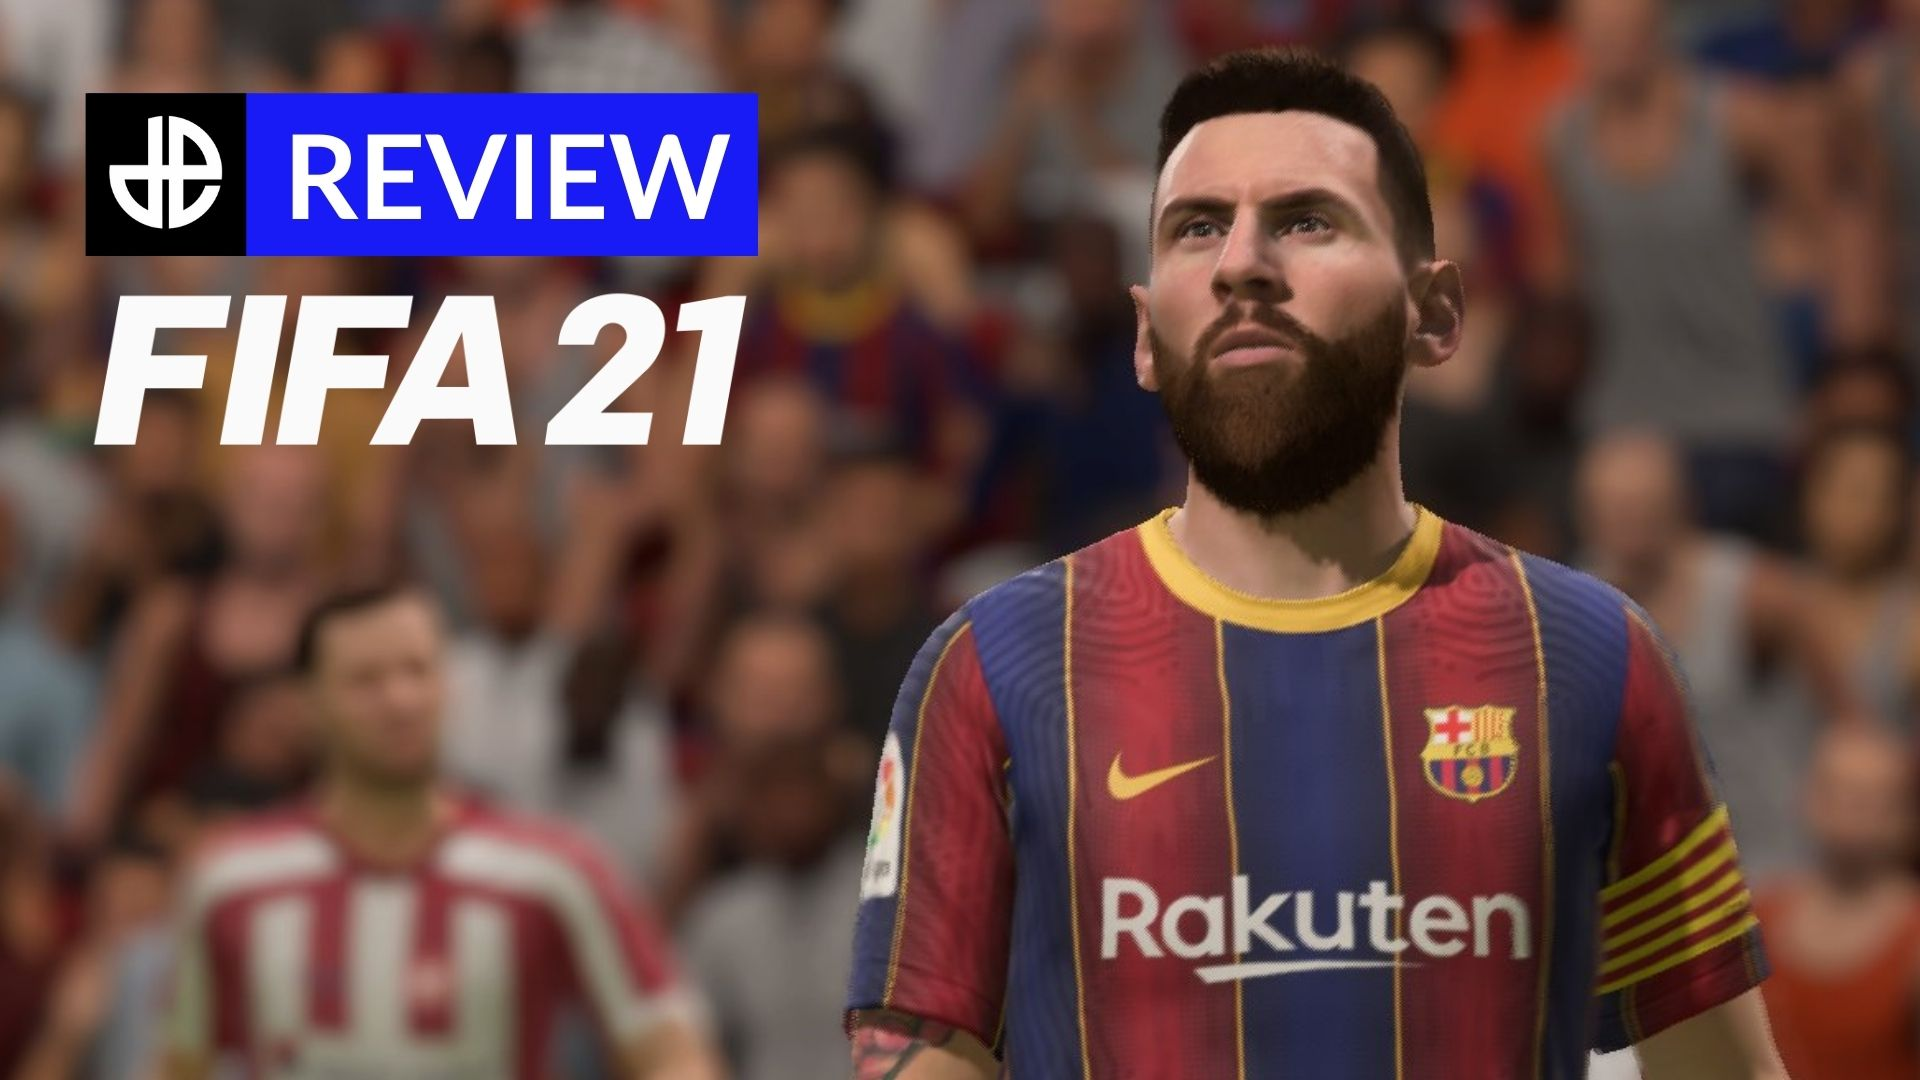 FIFA 21 with Lionel Messi